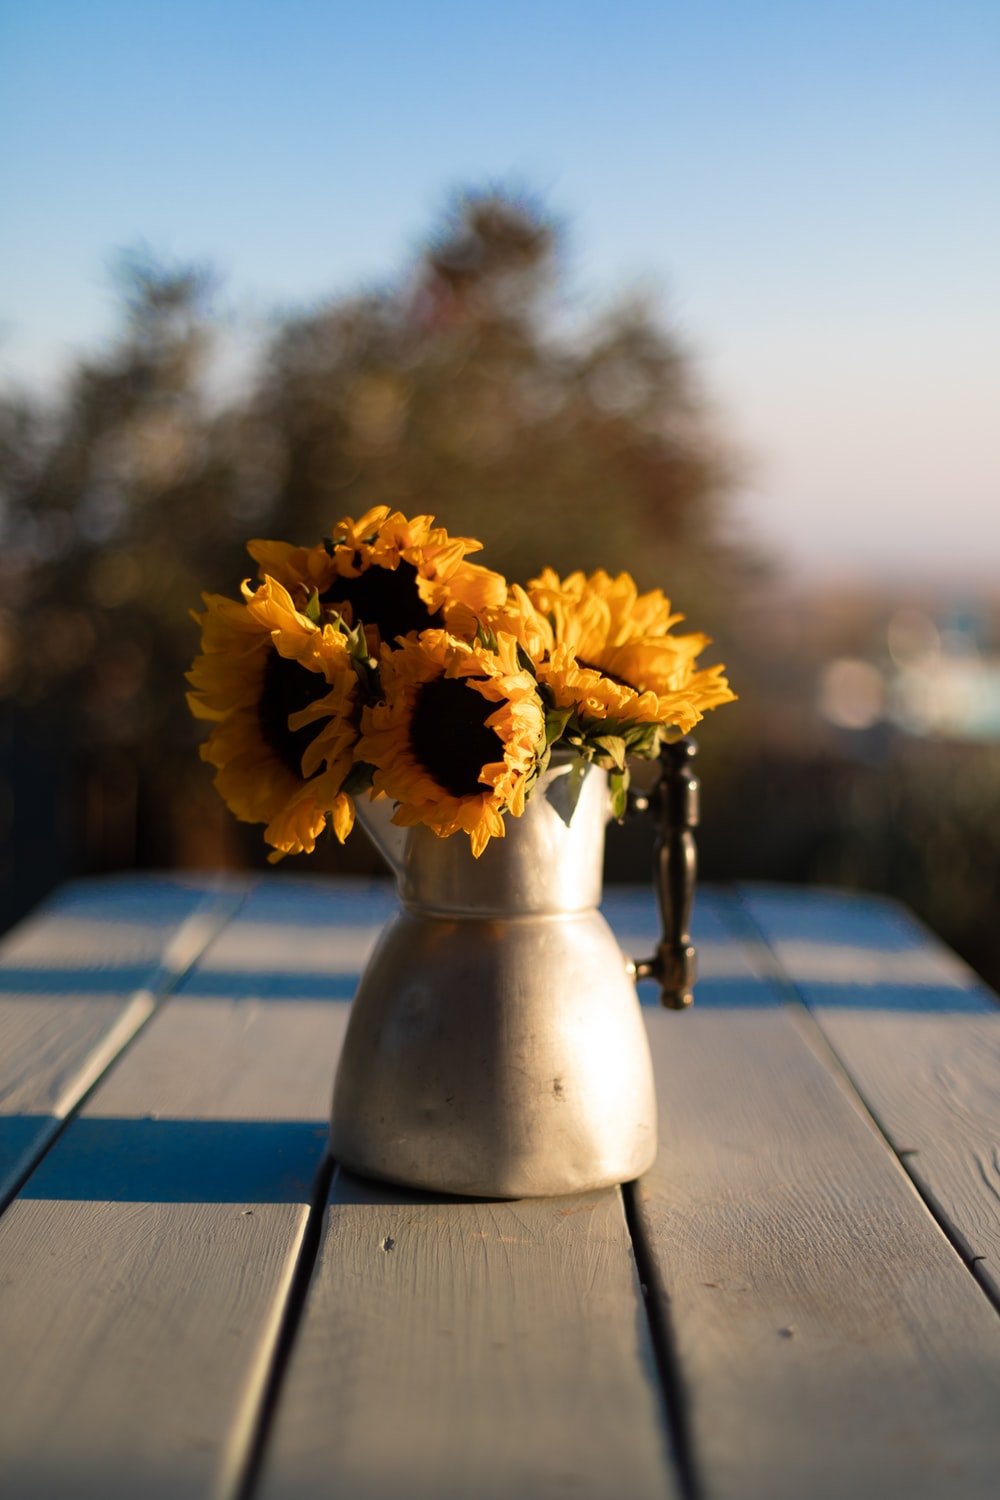 yellow flower in white vase on brown wooden table